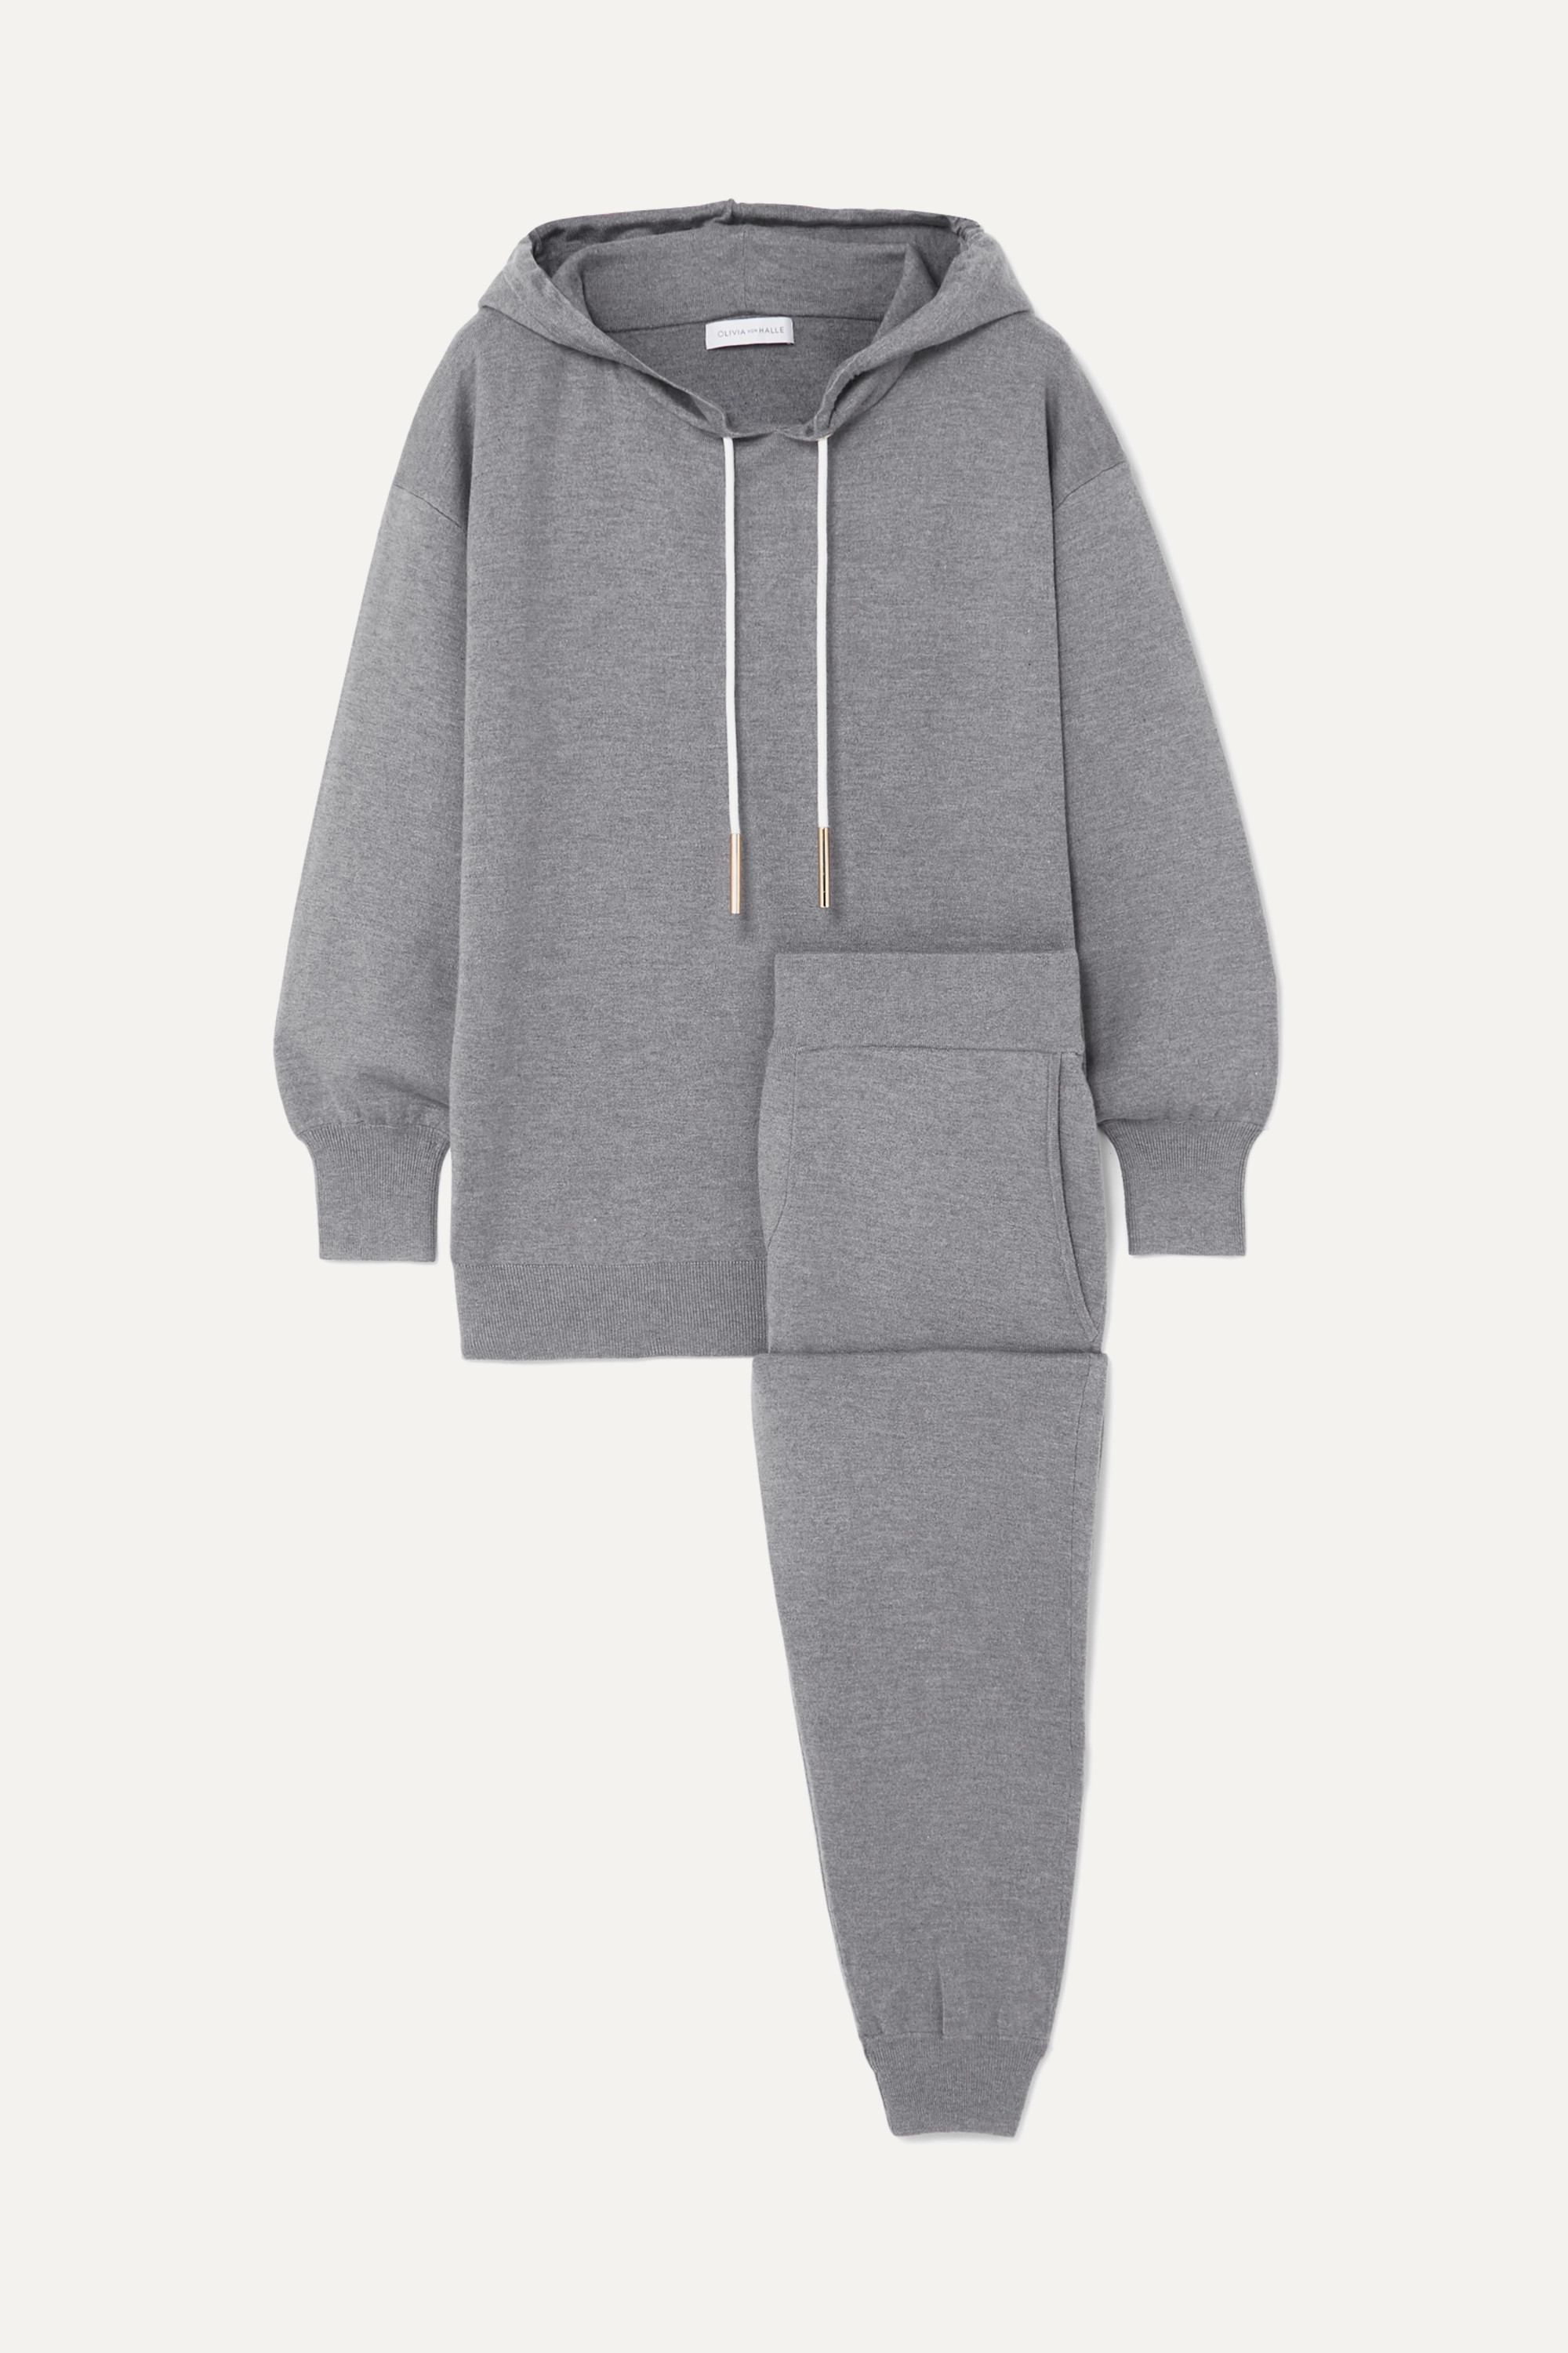 Olivia von Halle - Gia London silk and cashmere-blend hoodie and track pants set